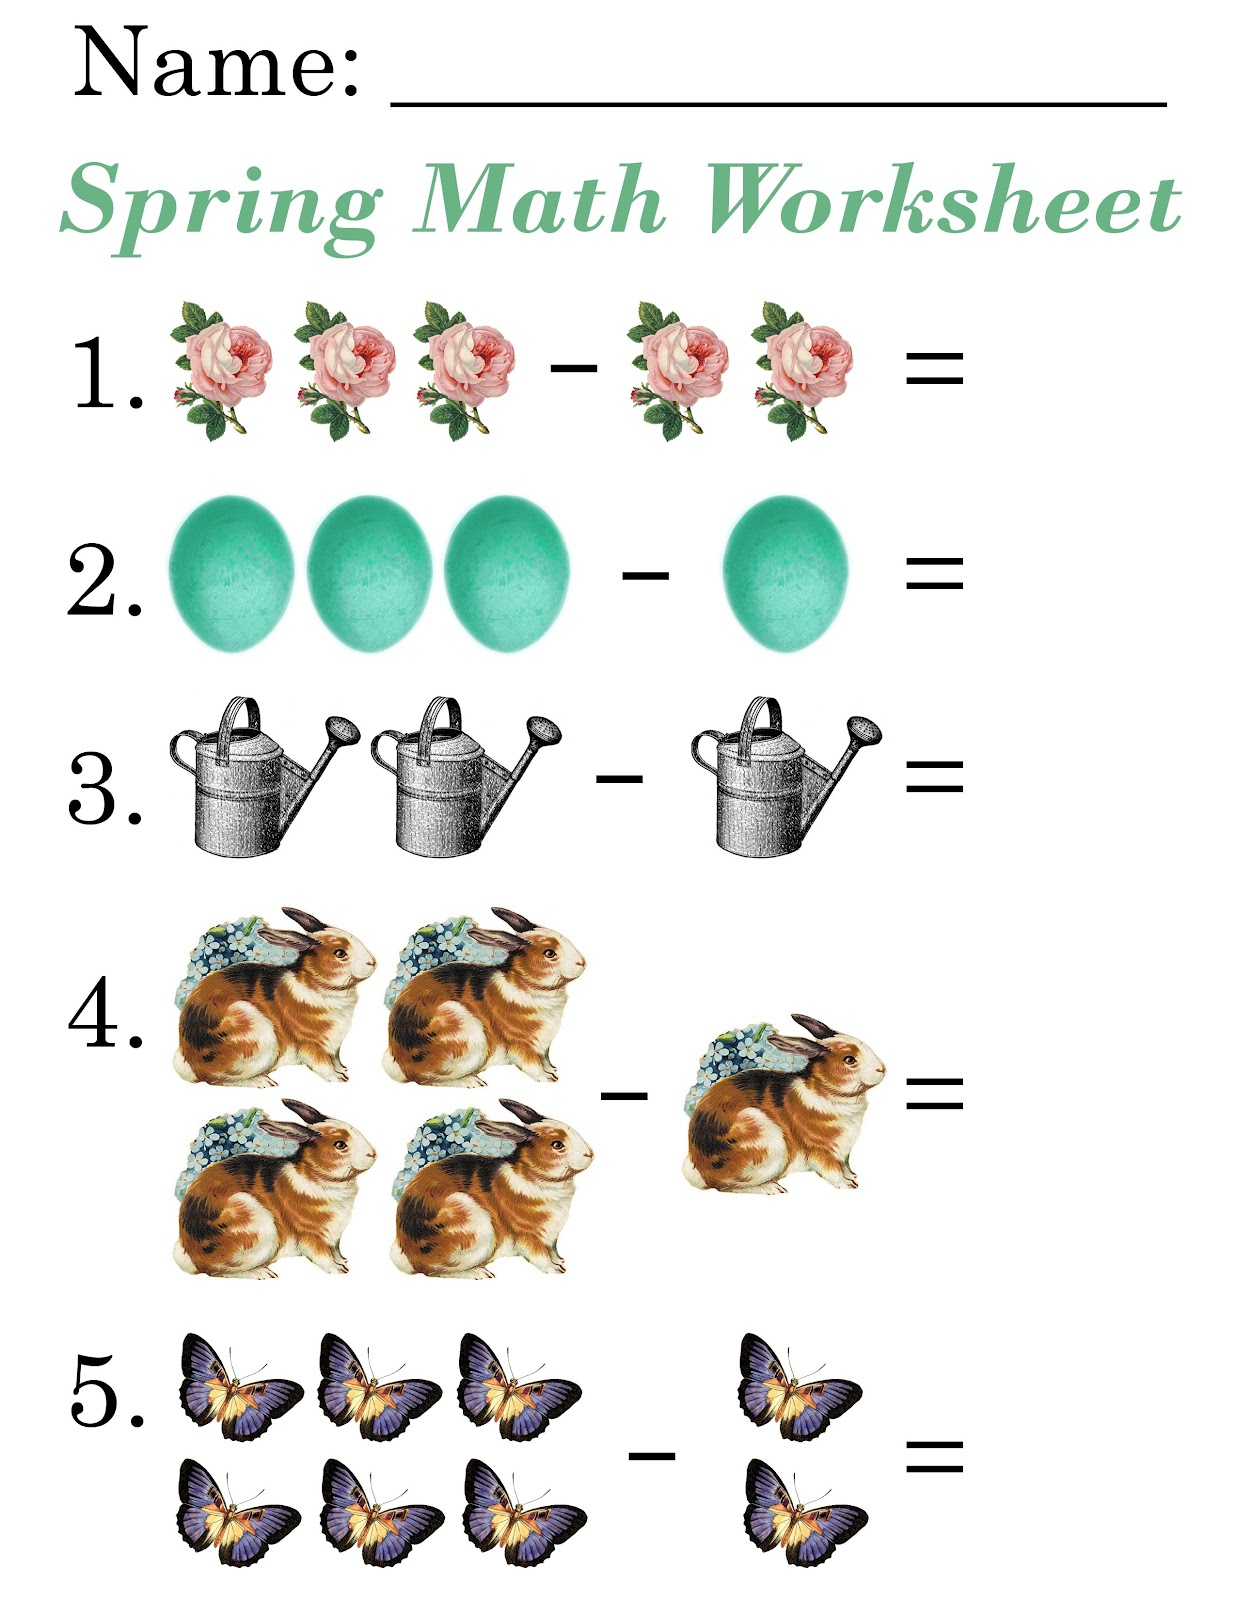 Uncategorized Maths Worksheets For 5 Year Olds lilac lavender kids spring math worksheets my children are 5 and 6 years old